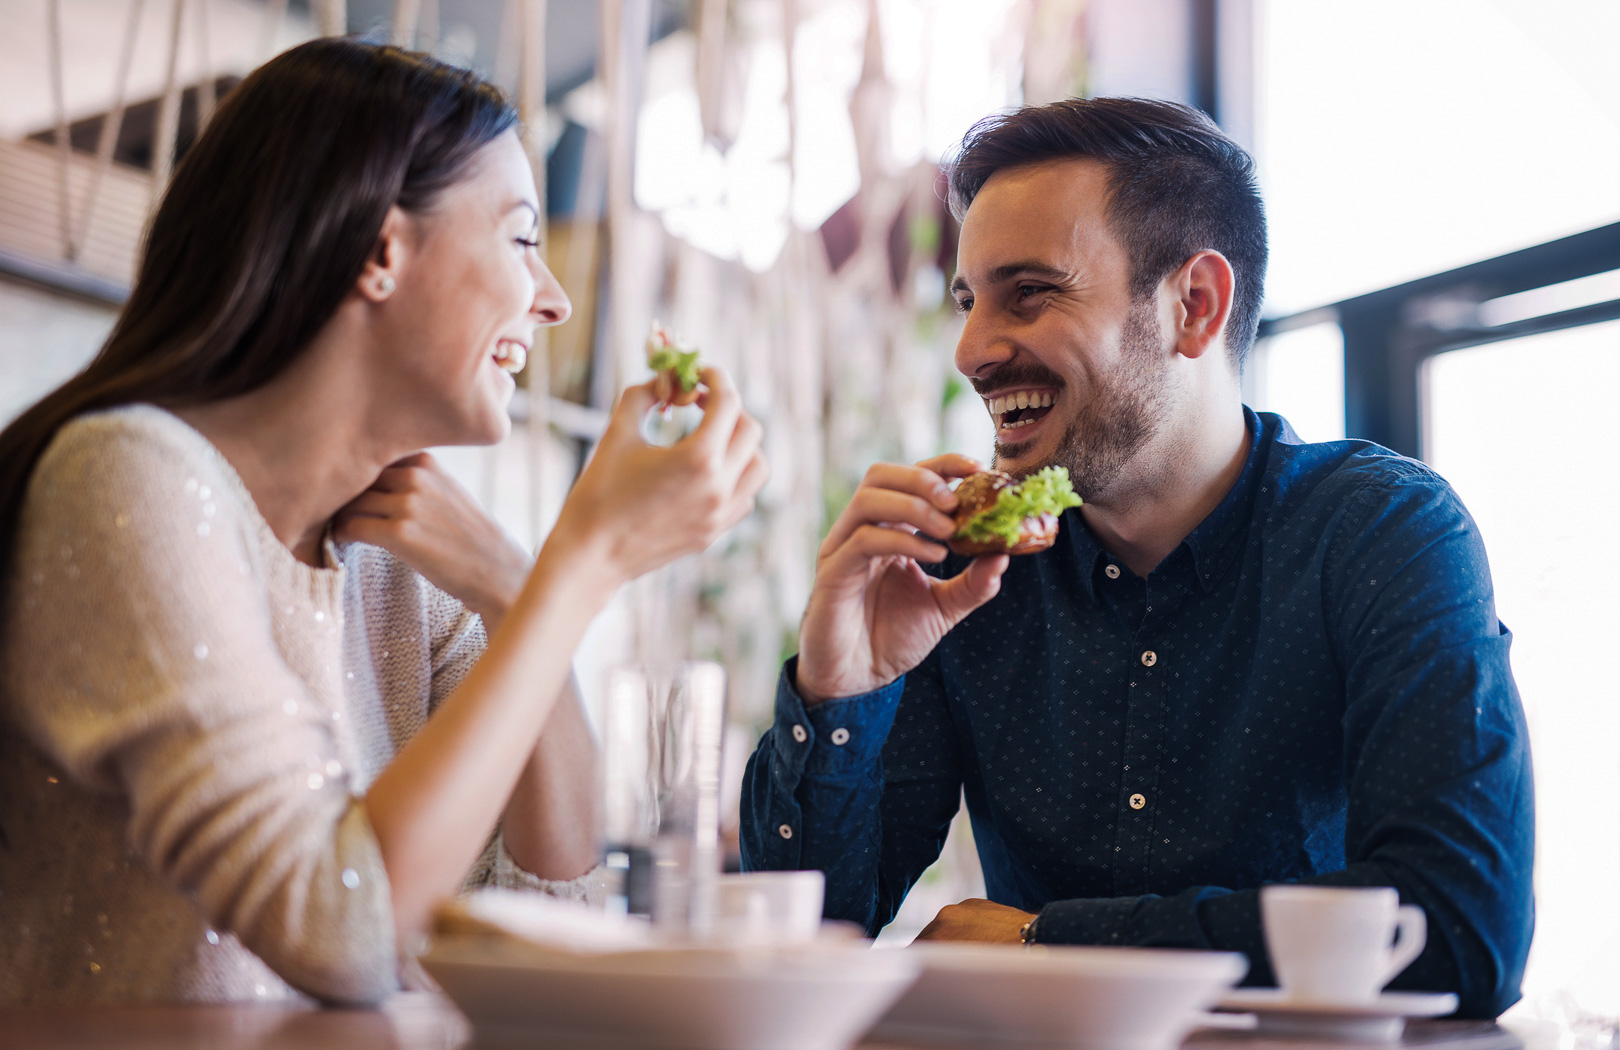 man and woman eating together and smiling